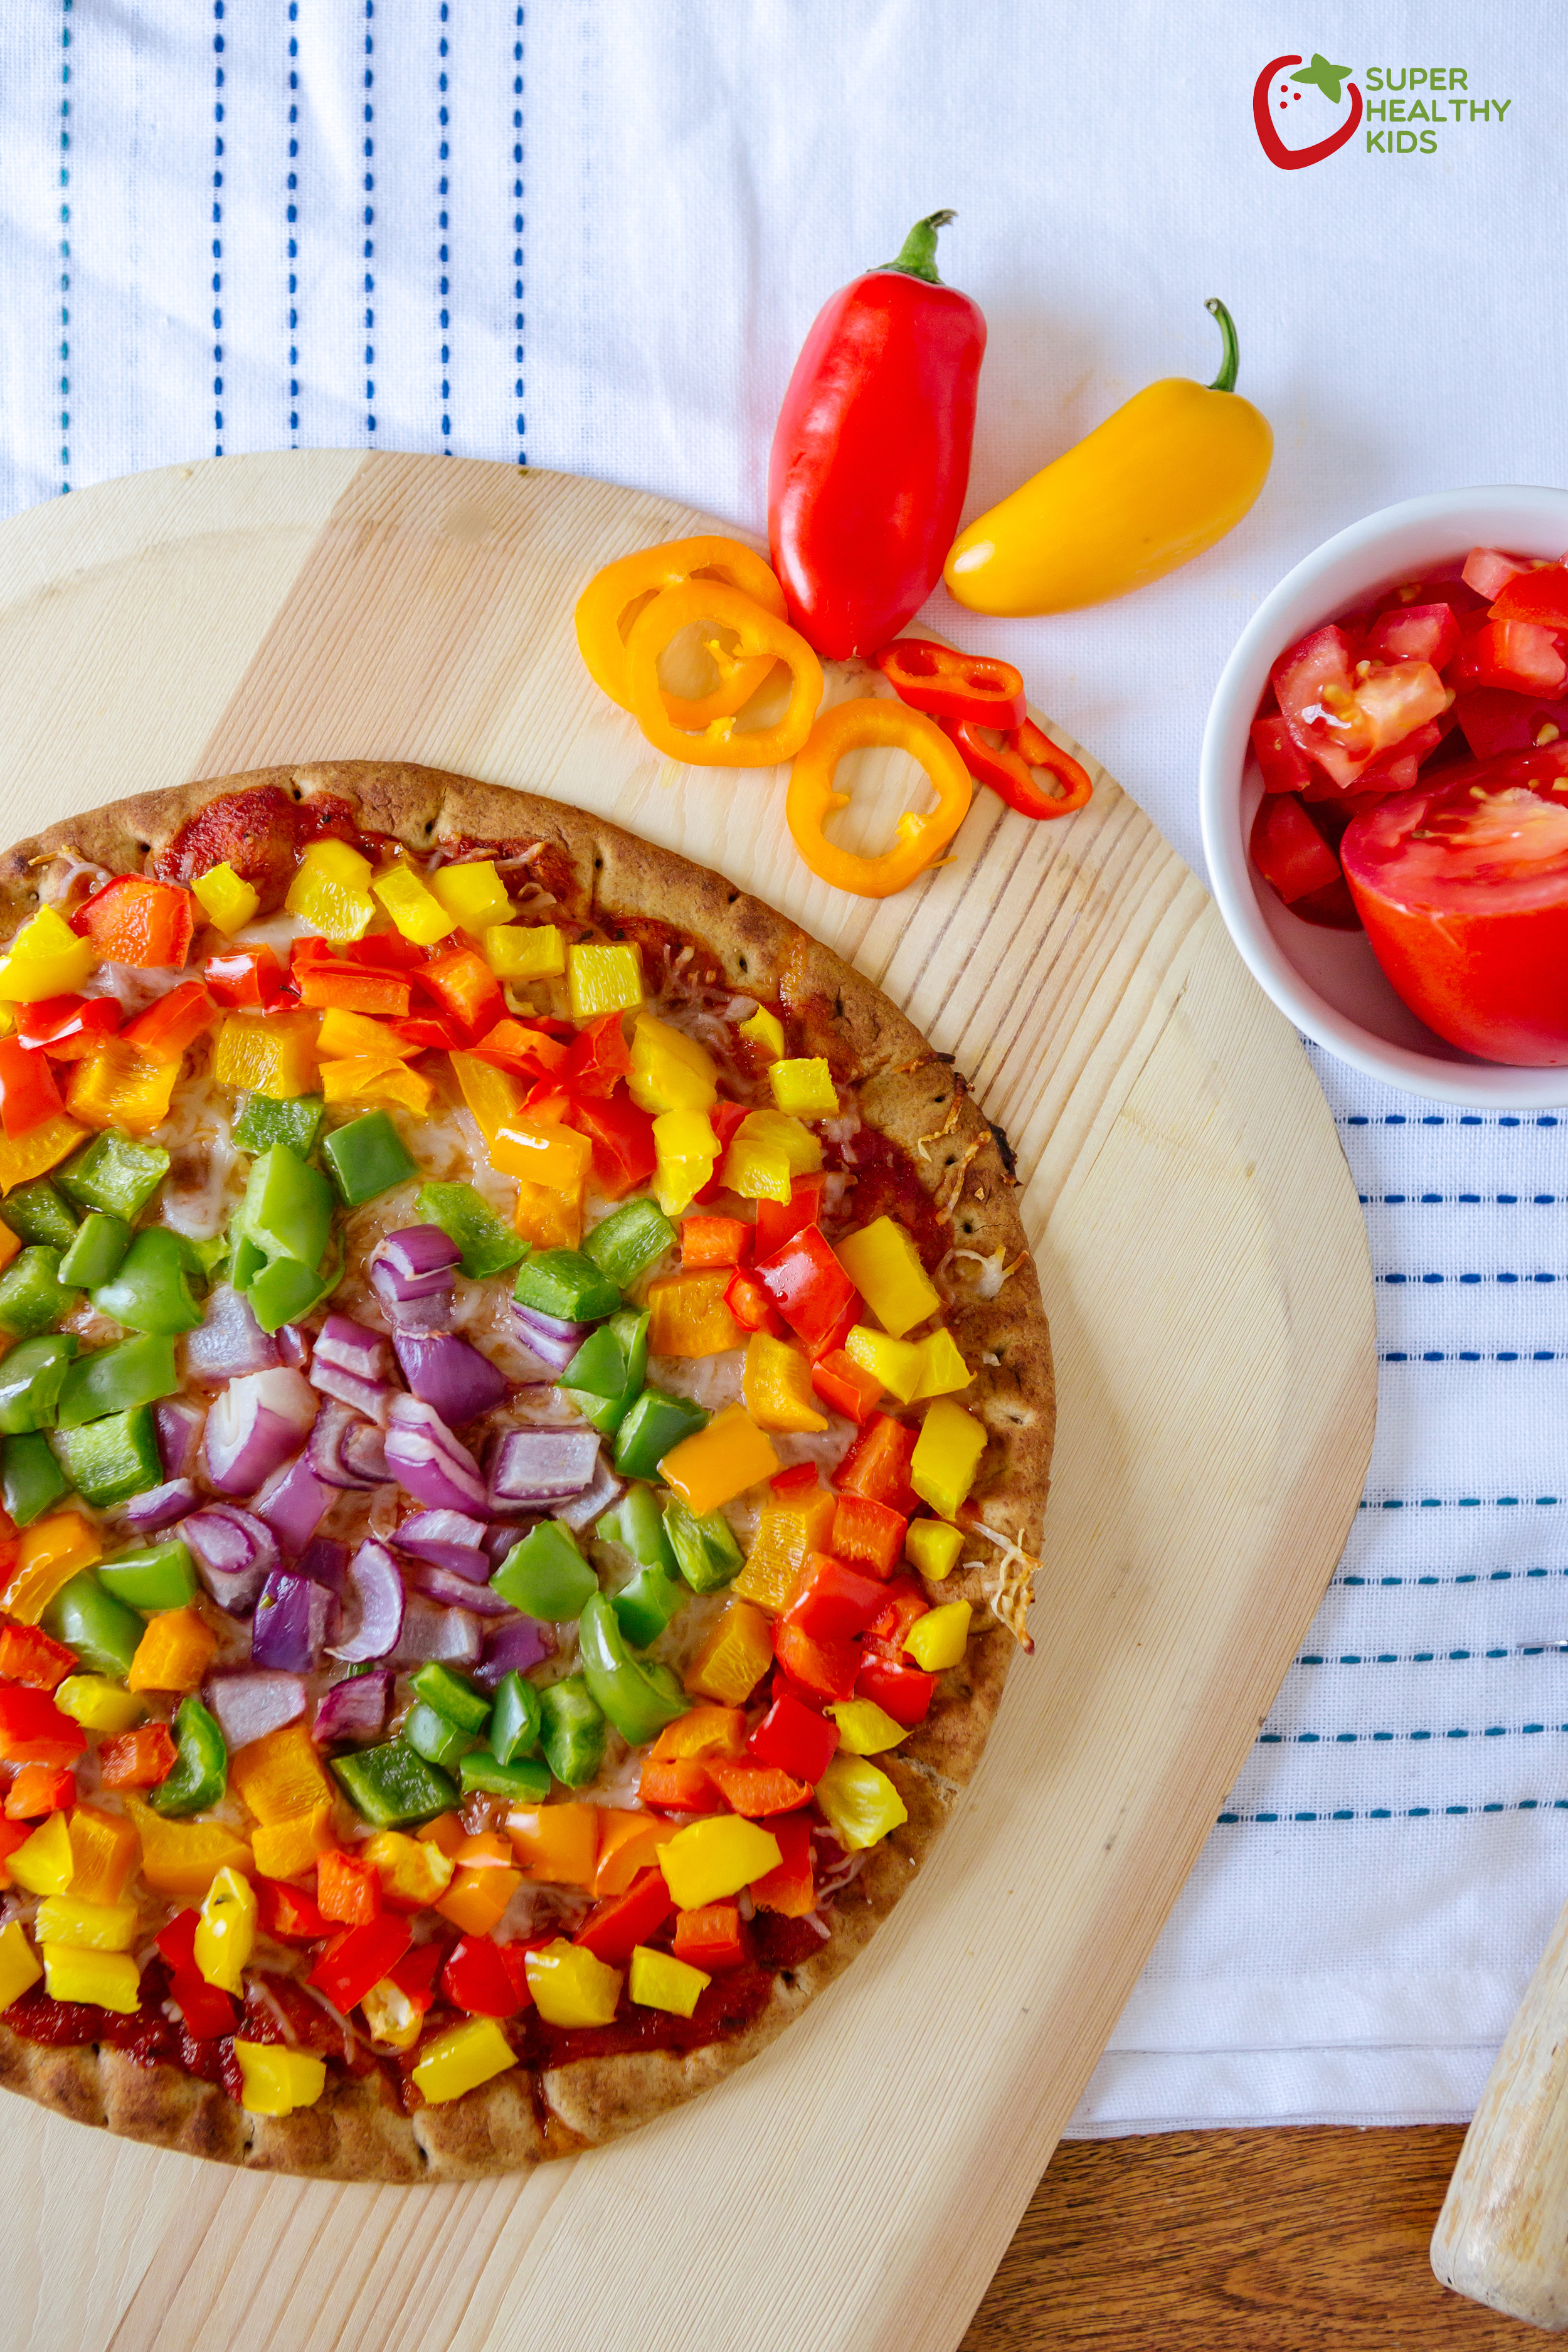 rainbow-pizza-from-super-healthy-kids.jpg